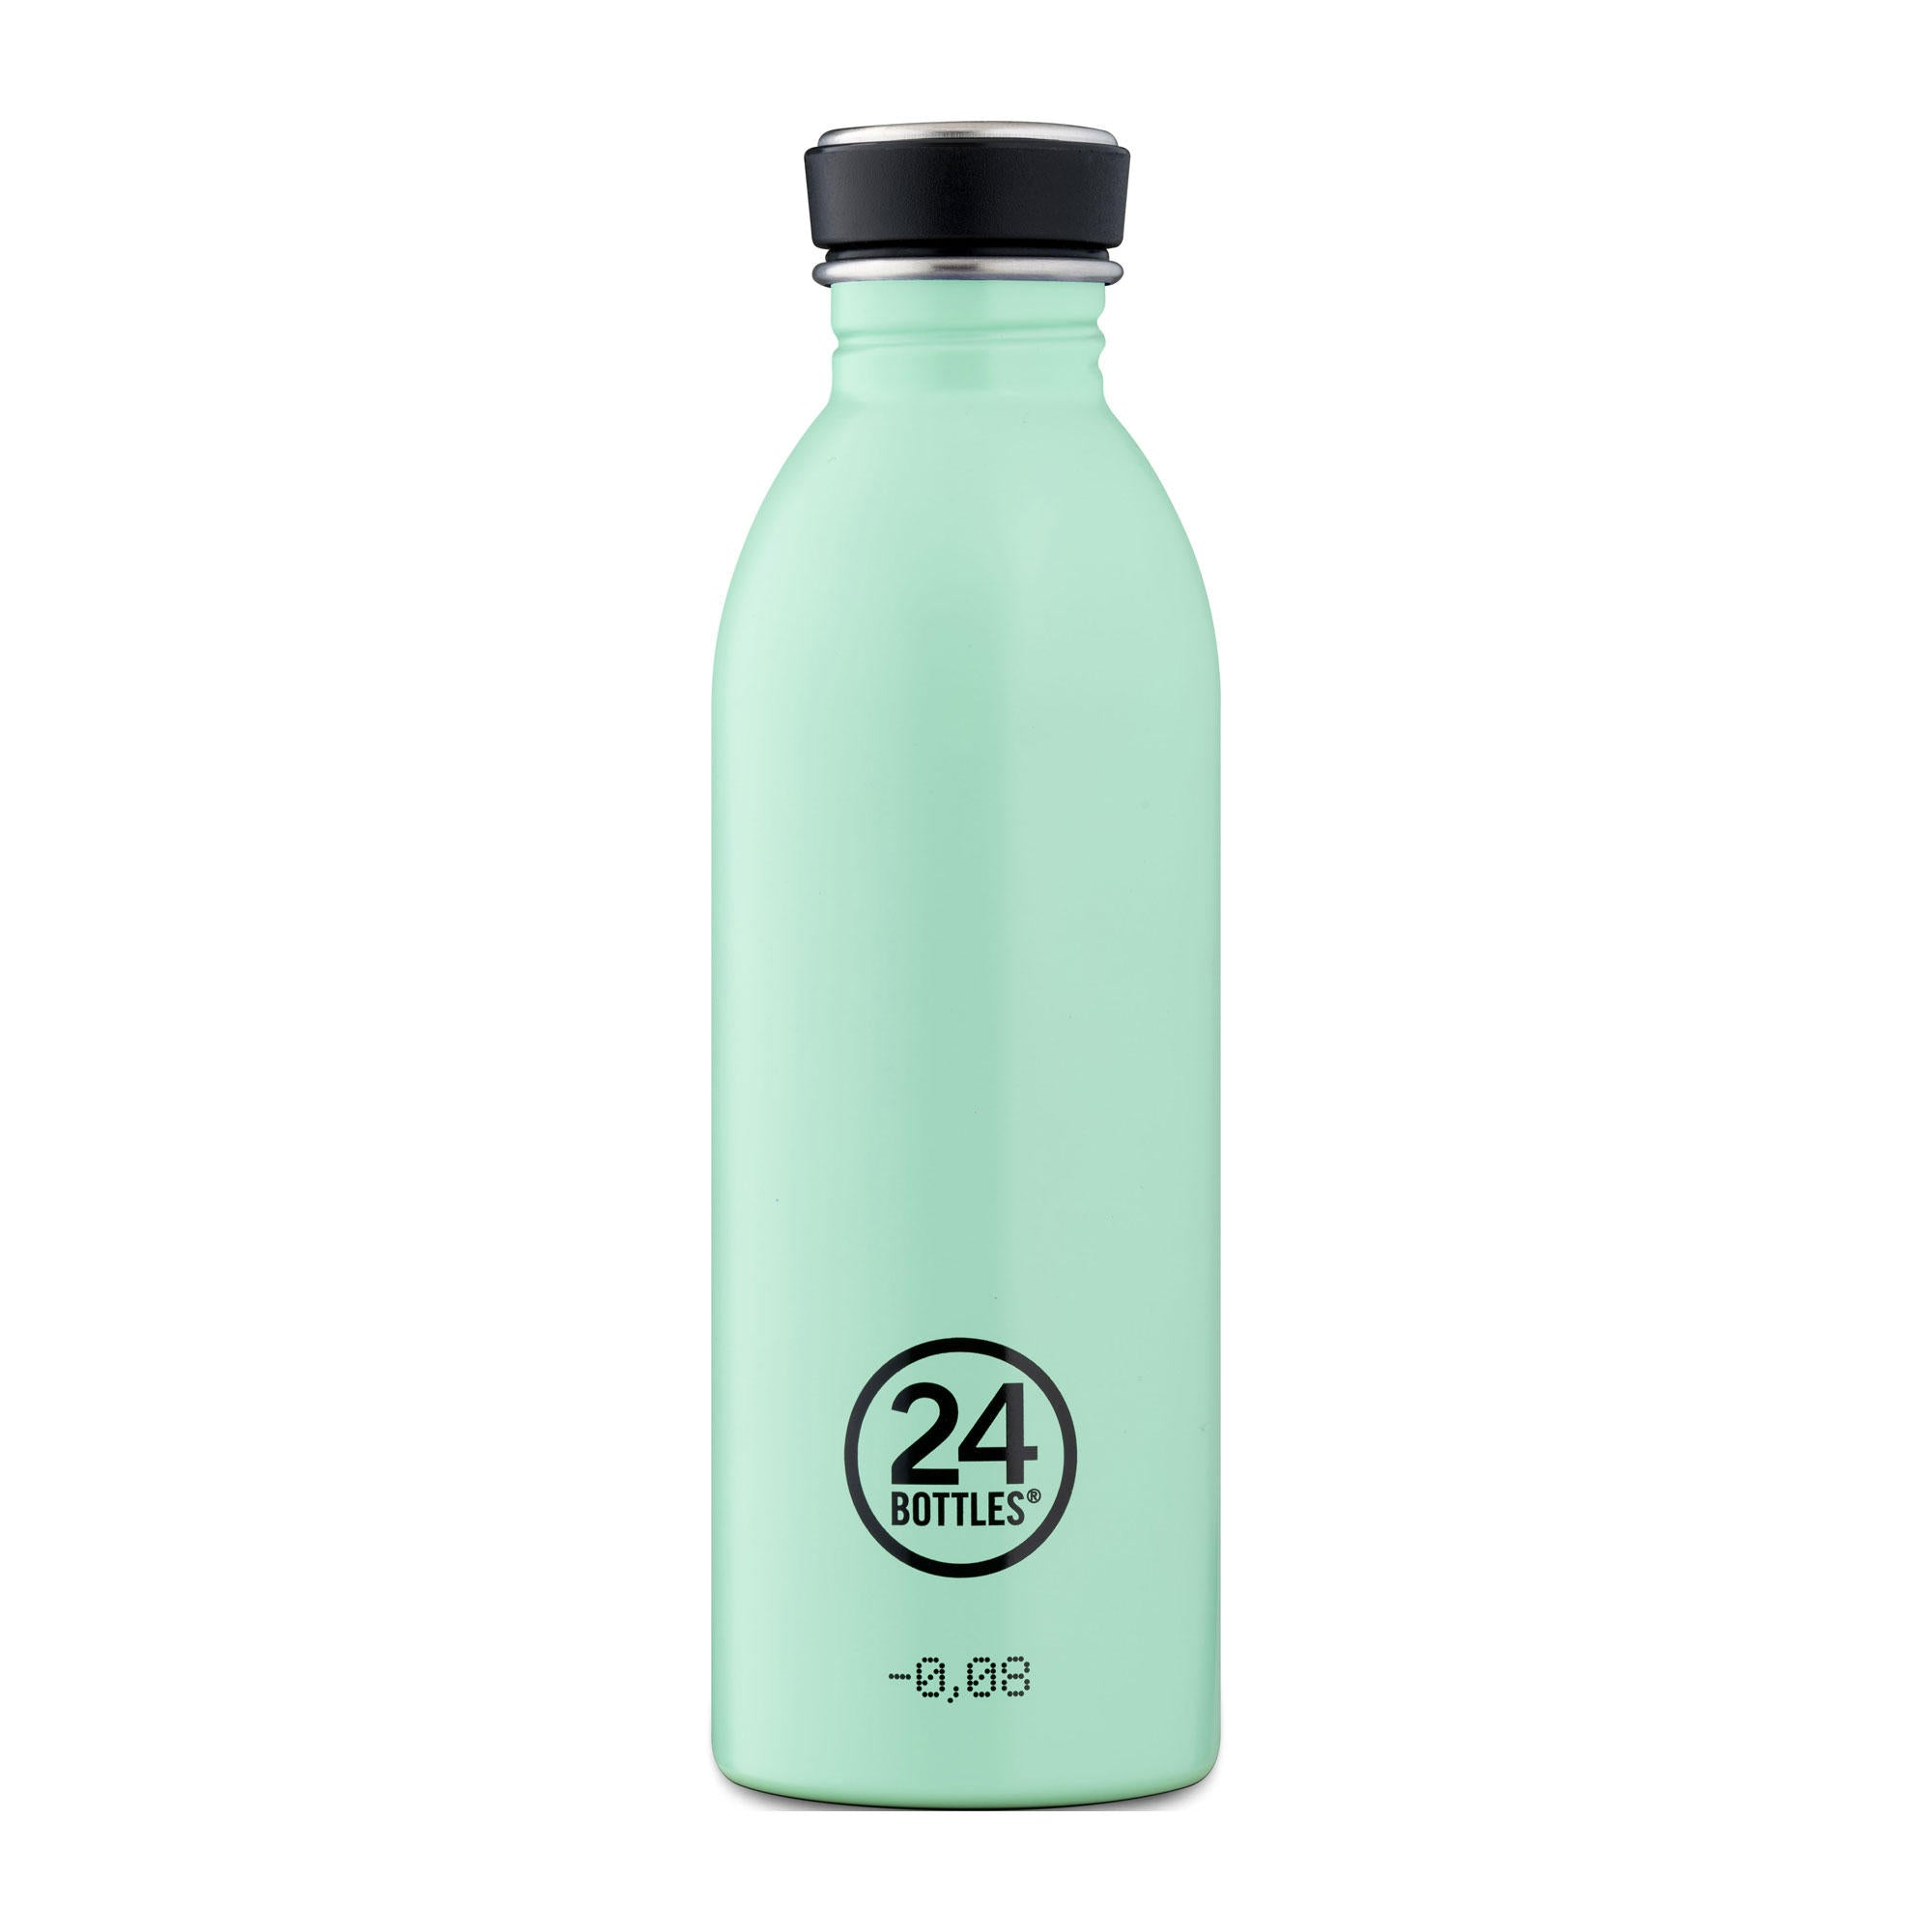 Urban Bottle - Aqua Green